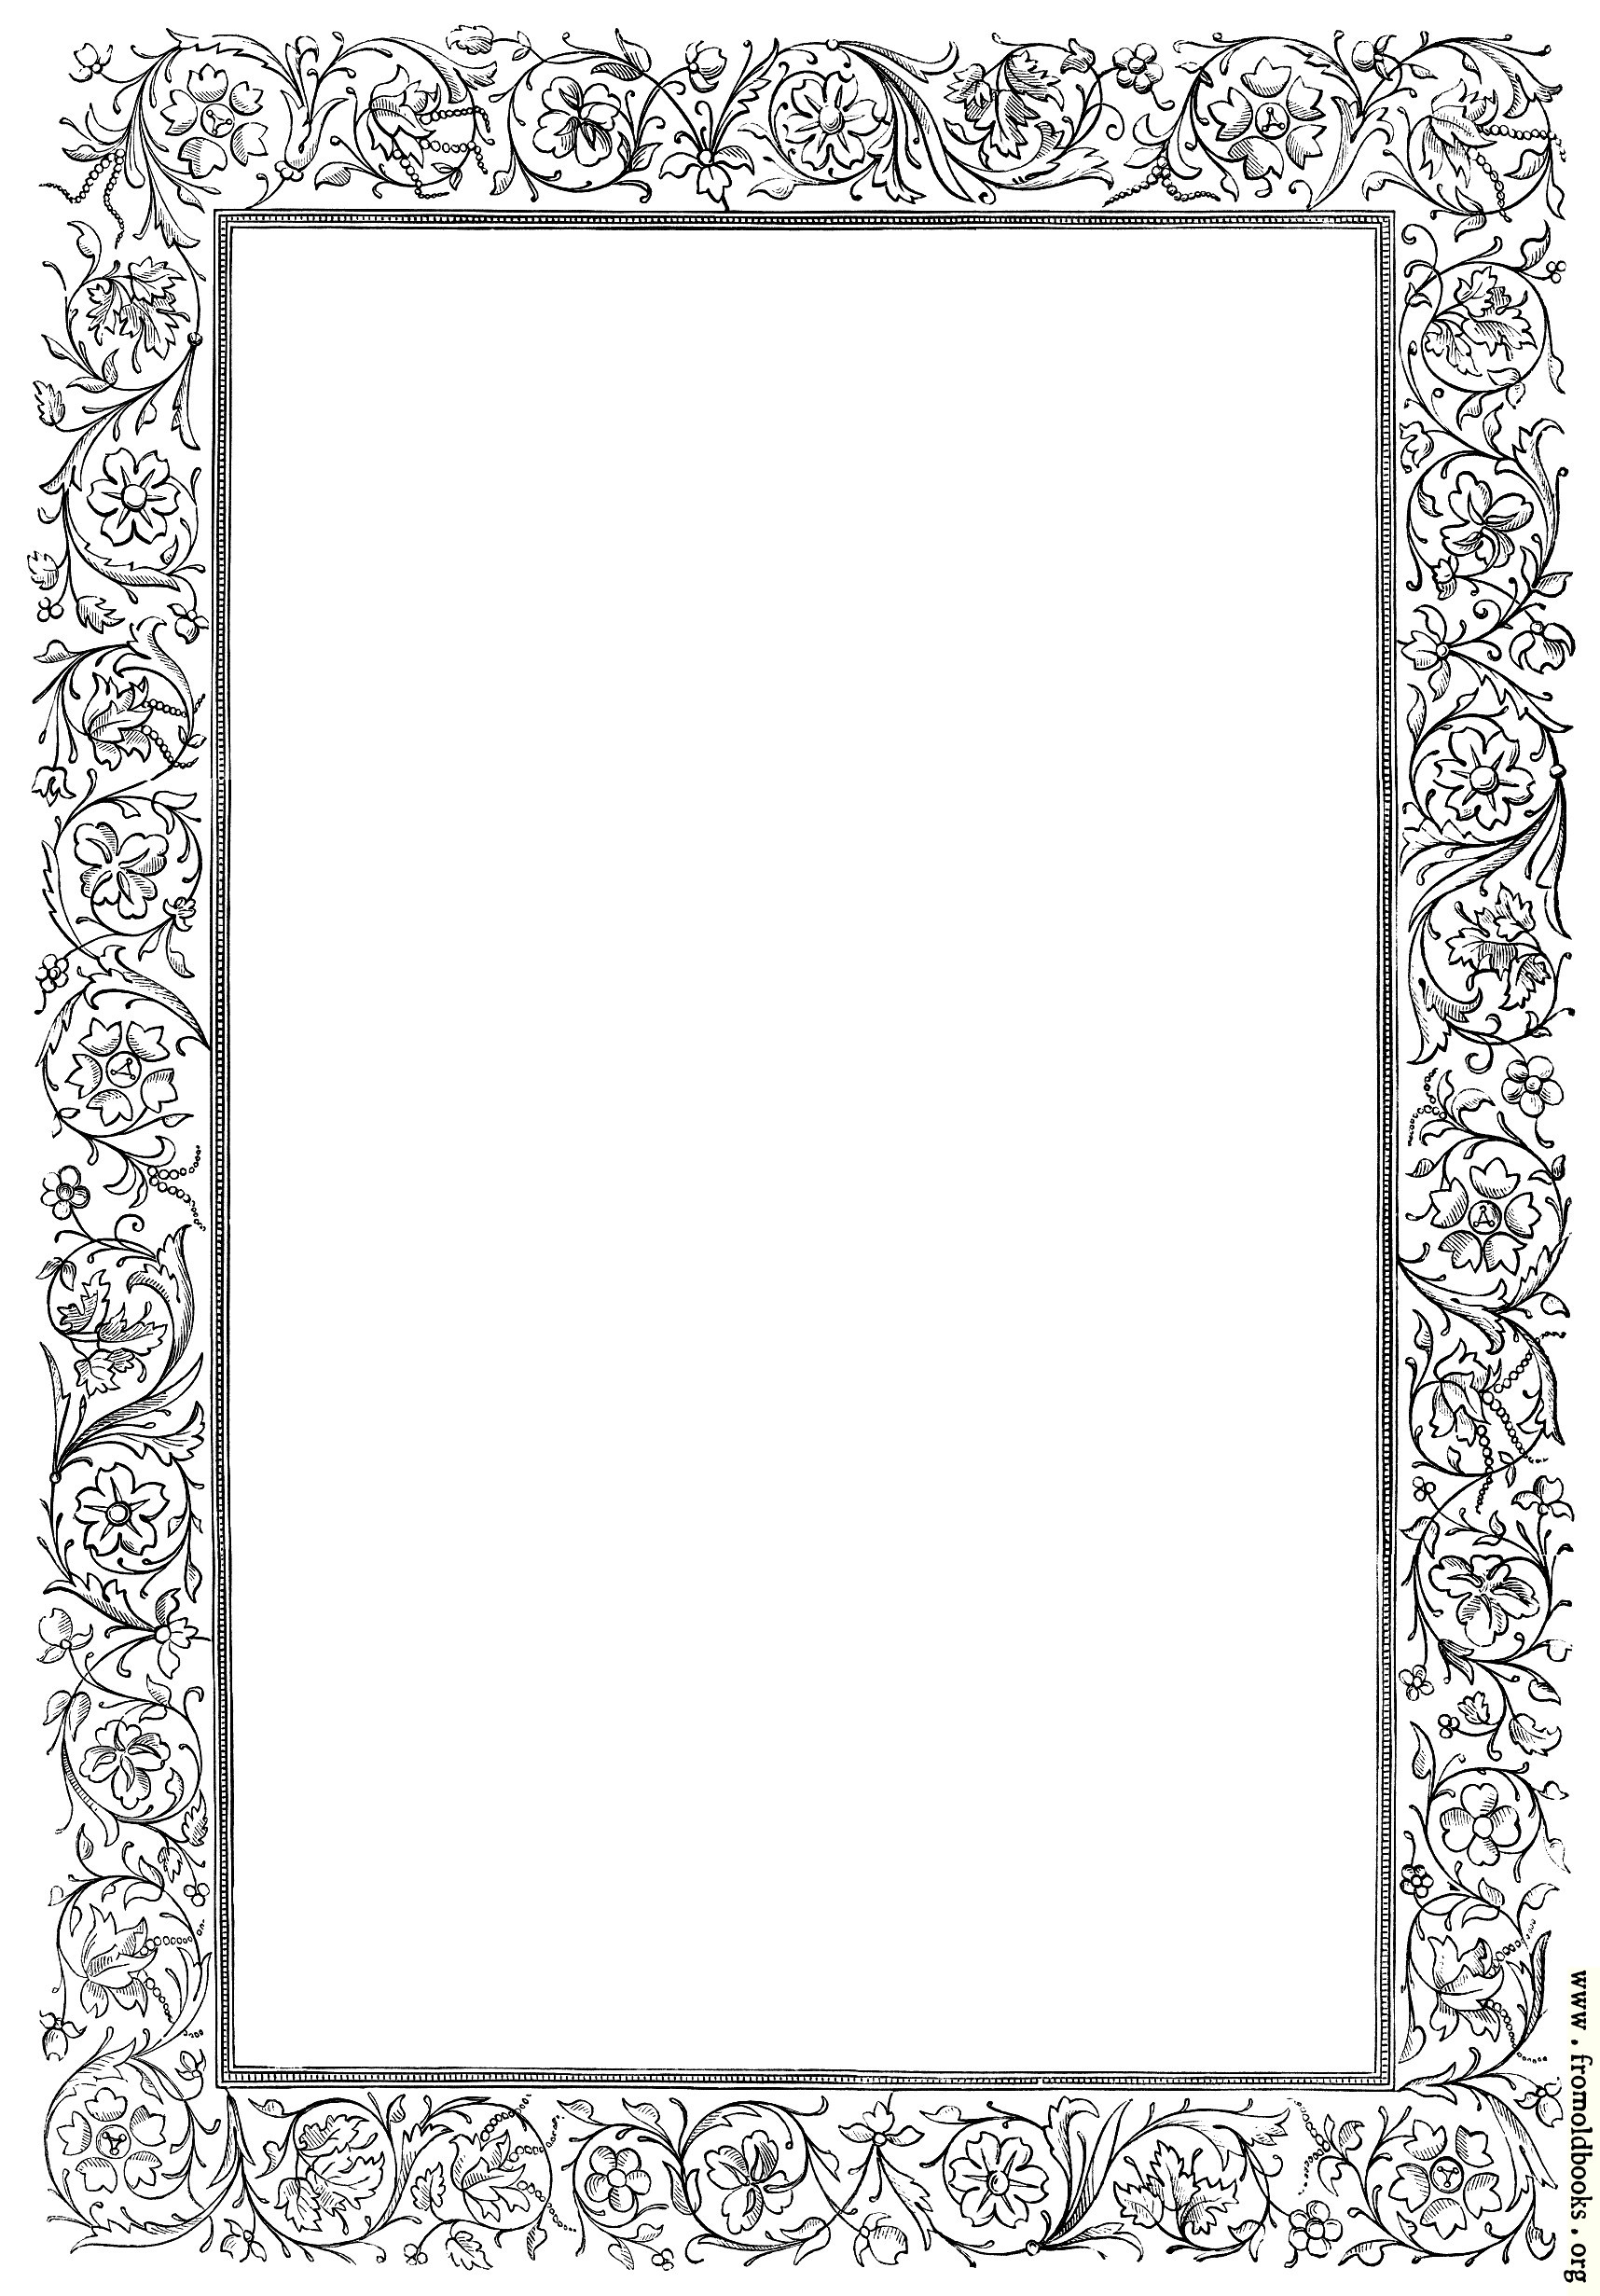 Free clip art victorian border of twigs and leaves image 330x500